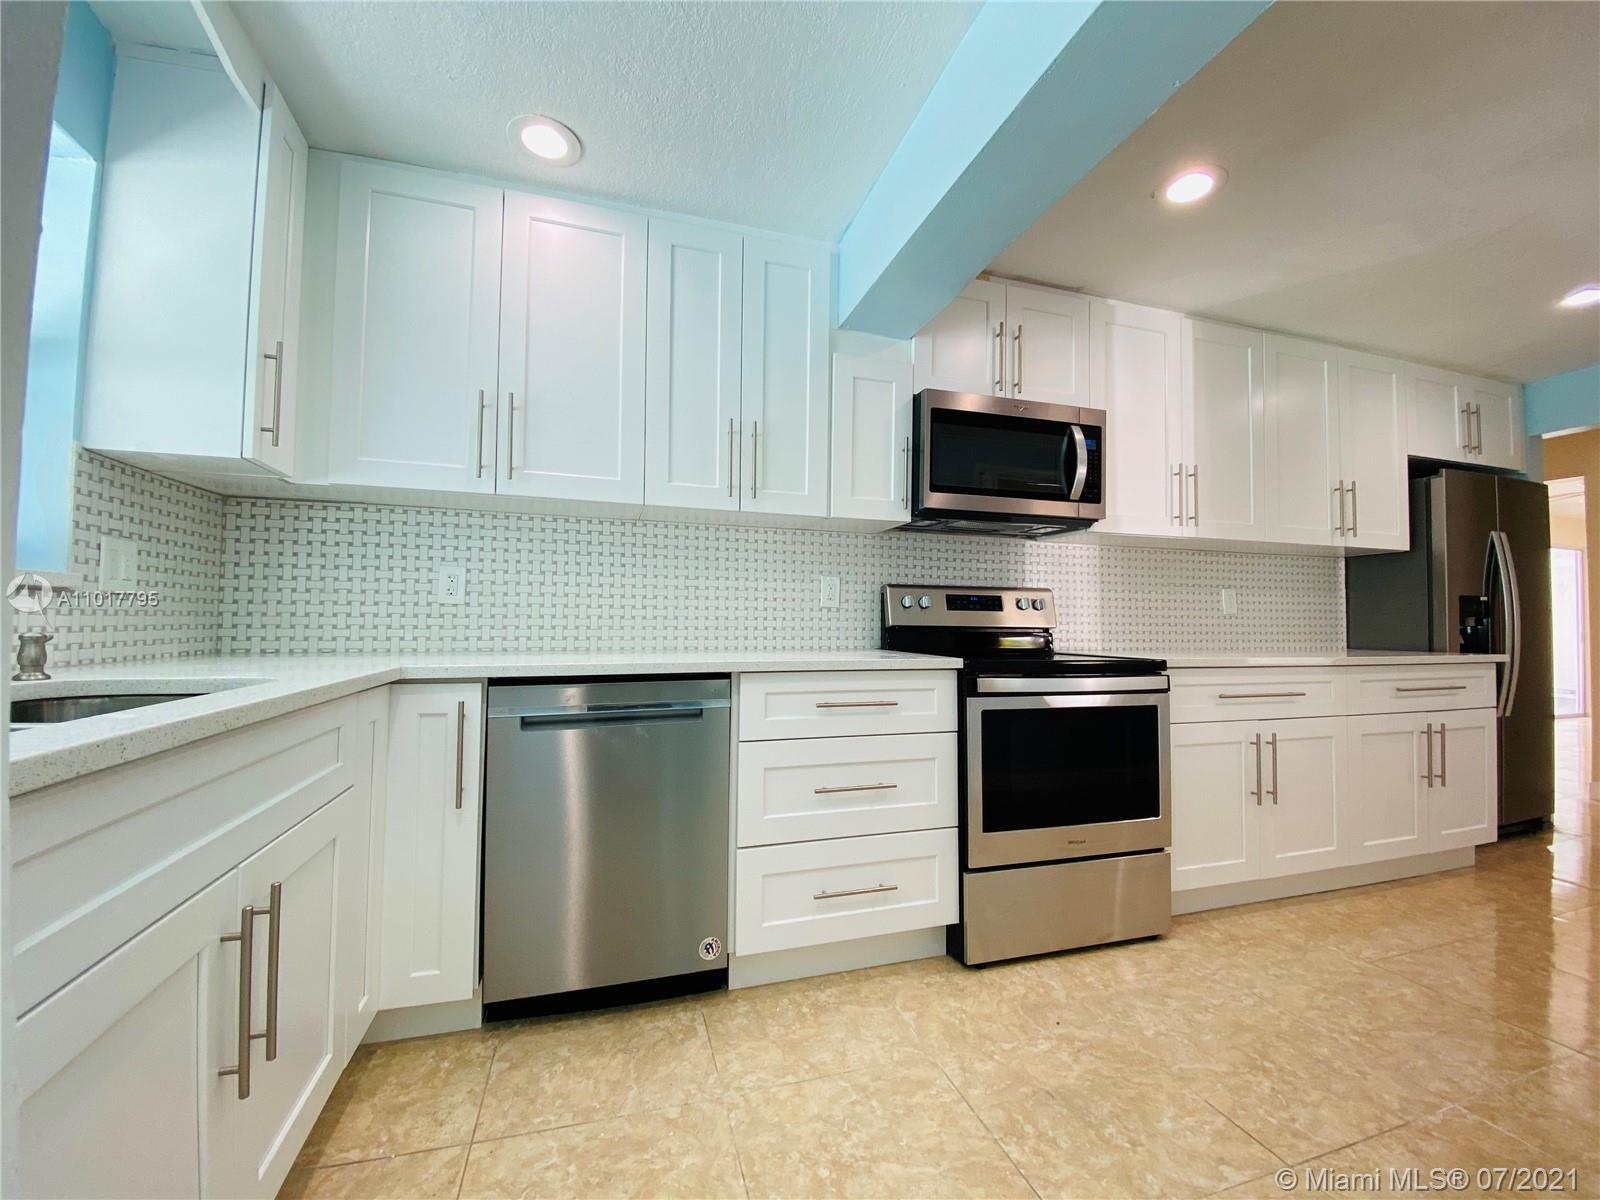 Updated kitchen and baths. Private backyard with pool. Impact windows and hurricane shutters. Must show proof of funds with offer. Backyard needs some TLC. Easy to show, vacant. Roof done in 2008.